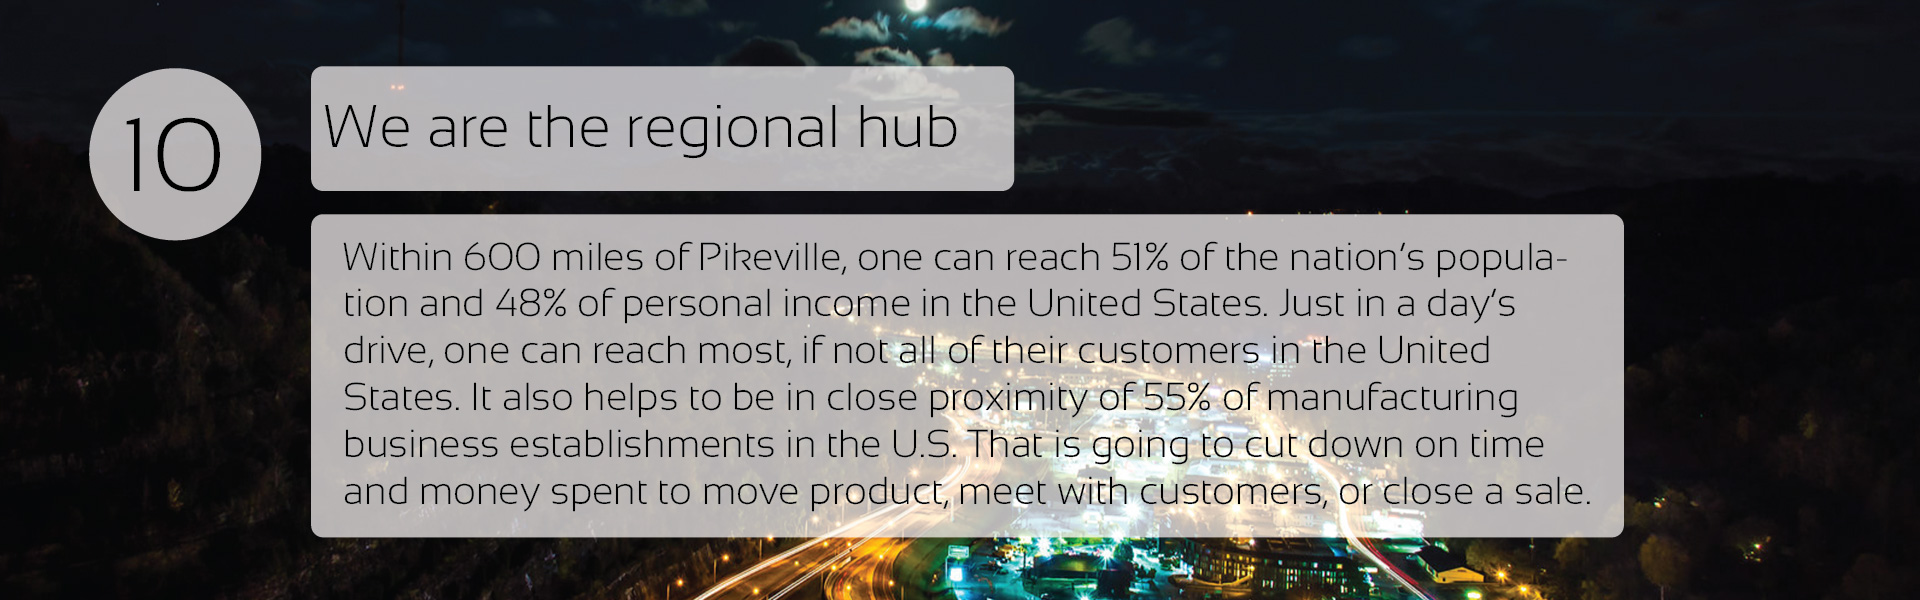 why_pikeville_10_reasons-10.jpg